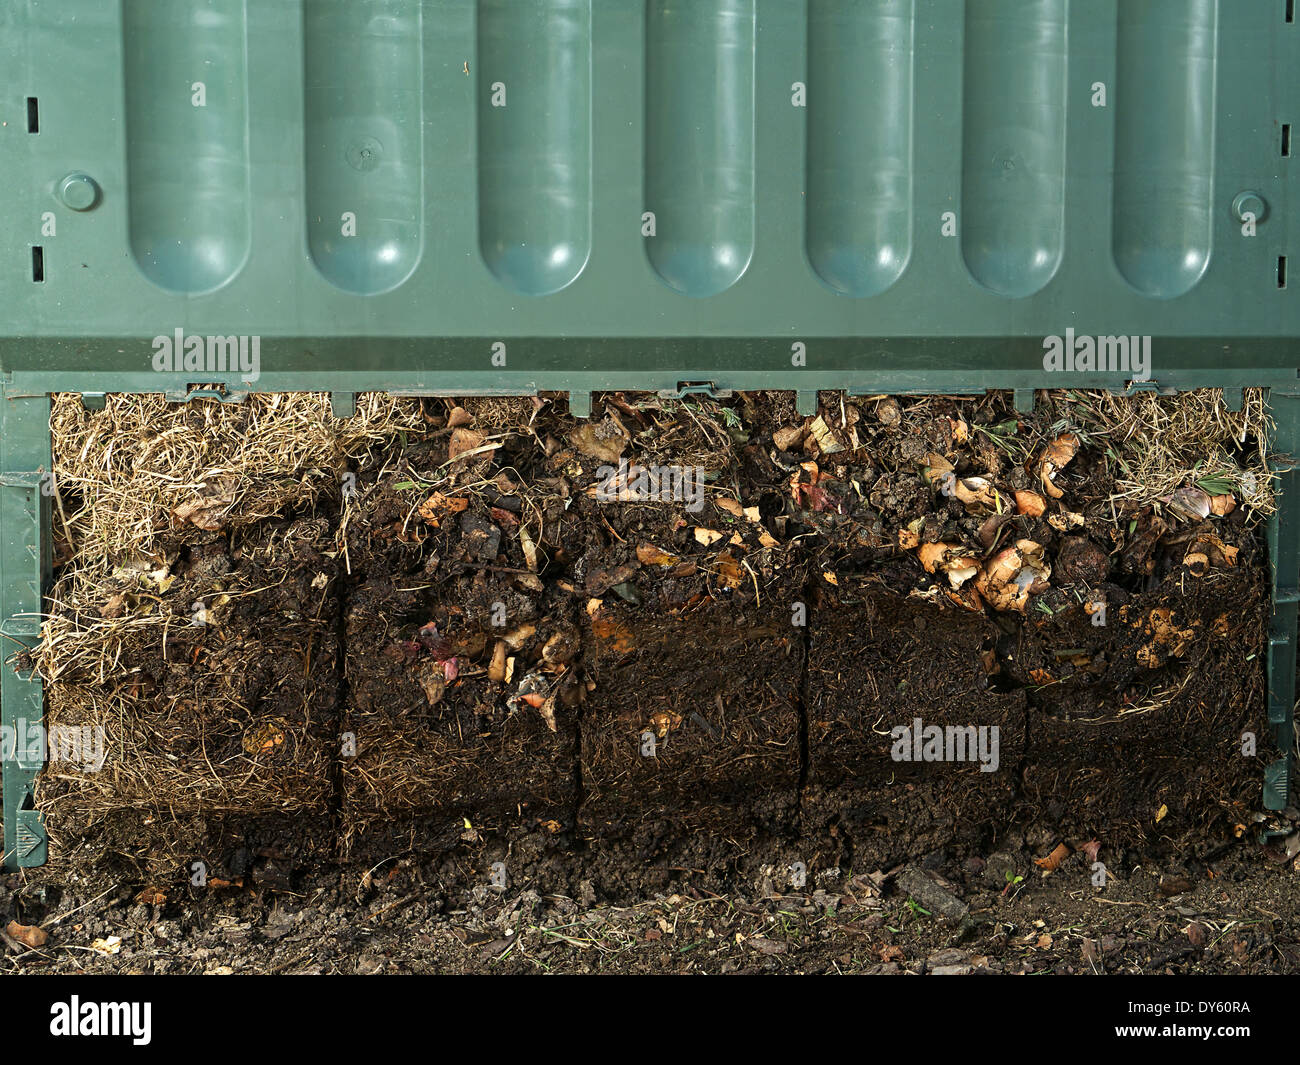 Closeup of green plastic compost bin with lower part removed to show advanced soil decomposition process Stock Photo